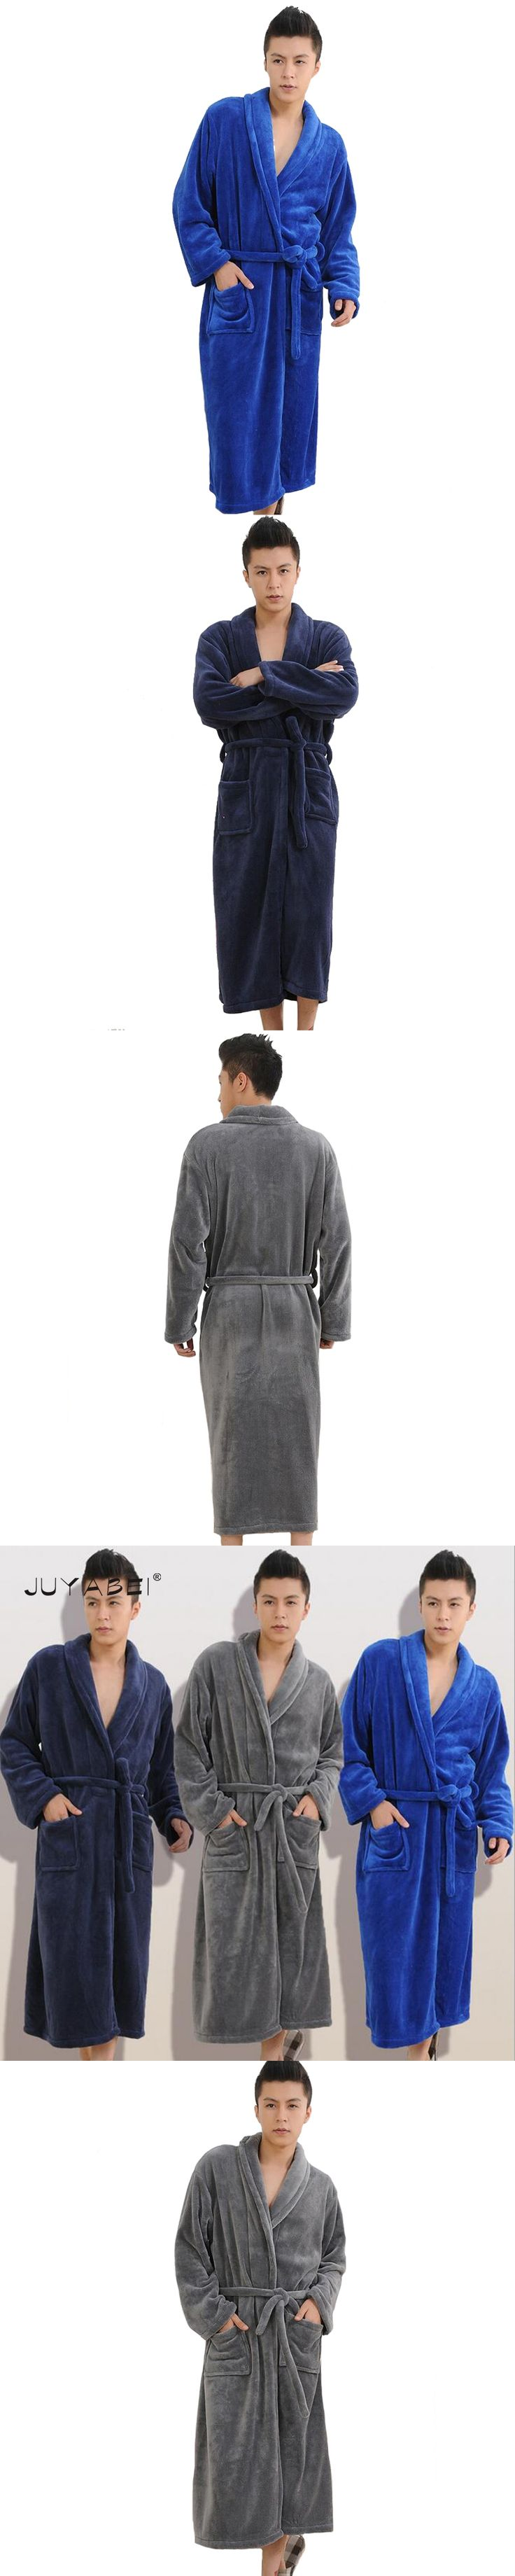 4 Colors 2017 Winter Autumn Flannel Men's Male's Bath Robes Belt Gentlemen's Homewear Male Sleepwear Lounges Pajamas Pyjamas